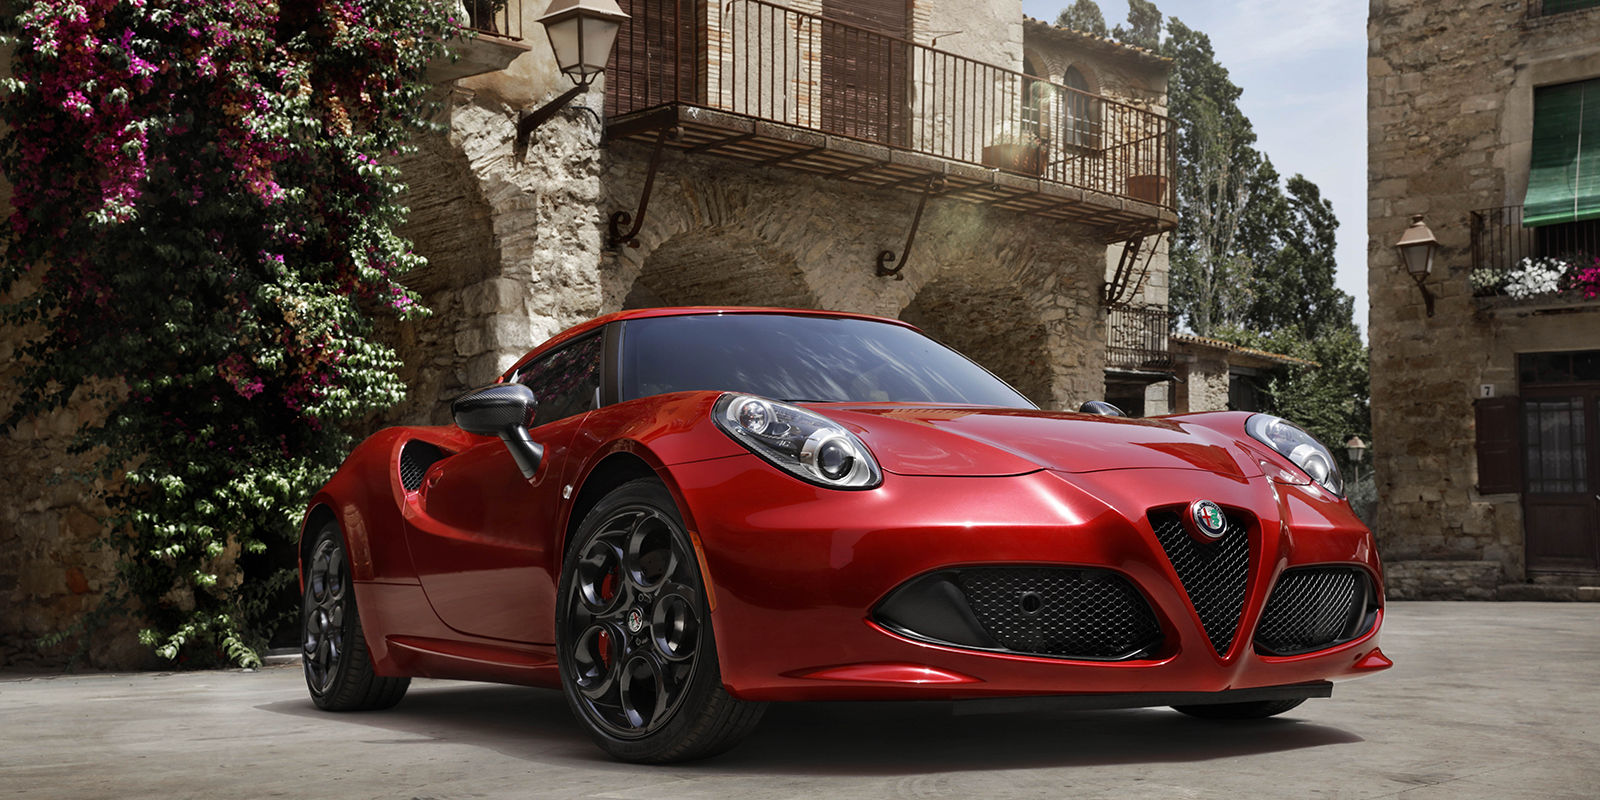 2017 alfa romeo 4c coupe vs jaguar f type comparison. Black Bedroom Furniture Sets. Home Design Ideas